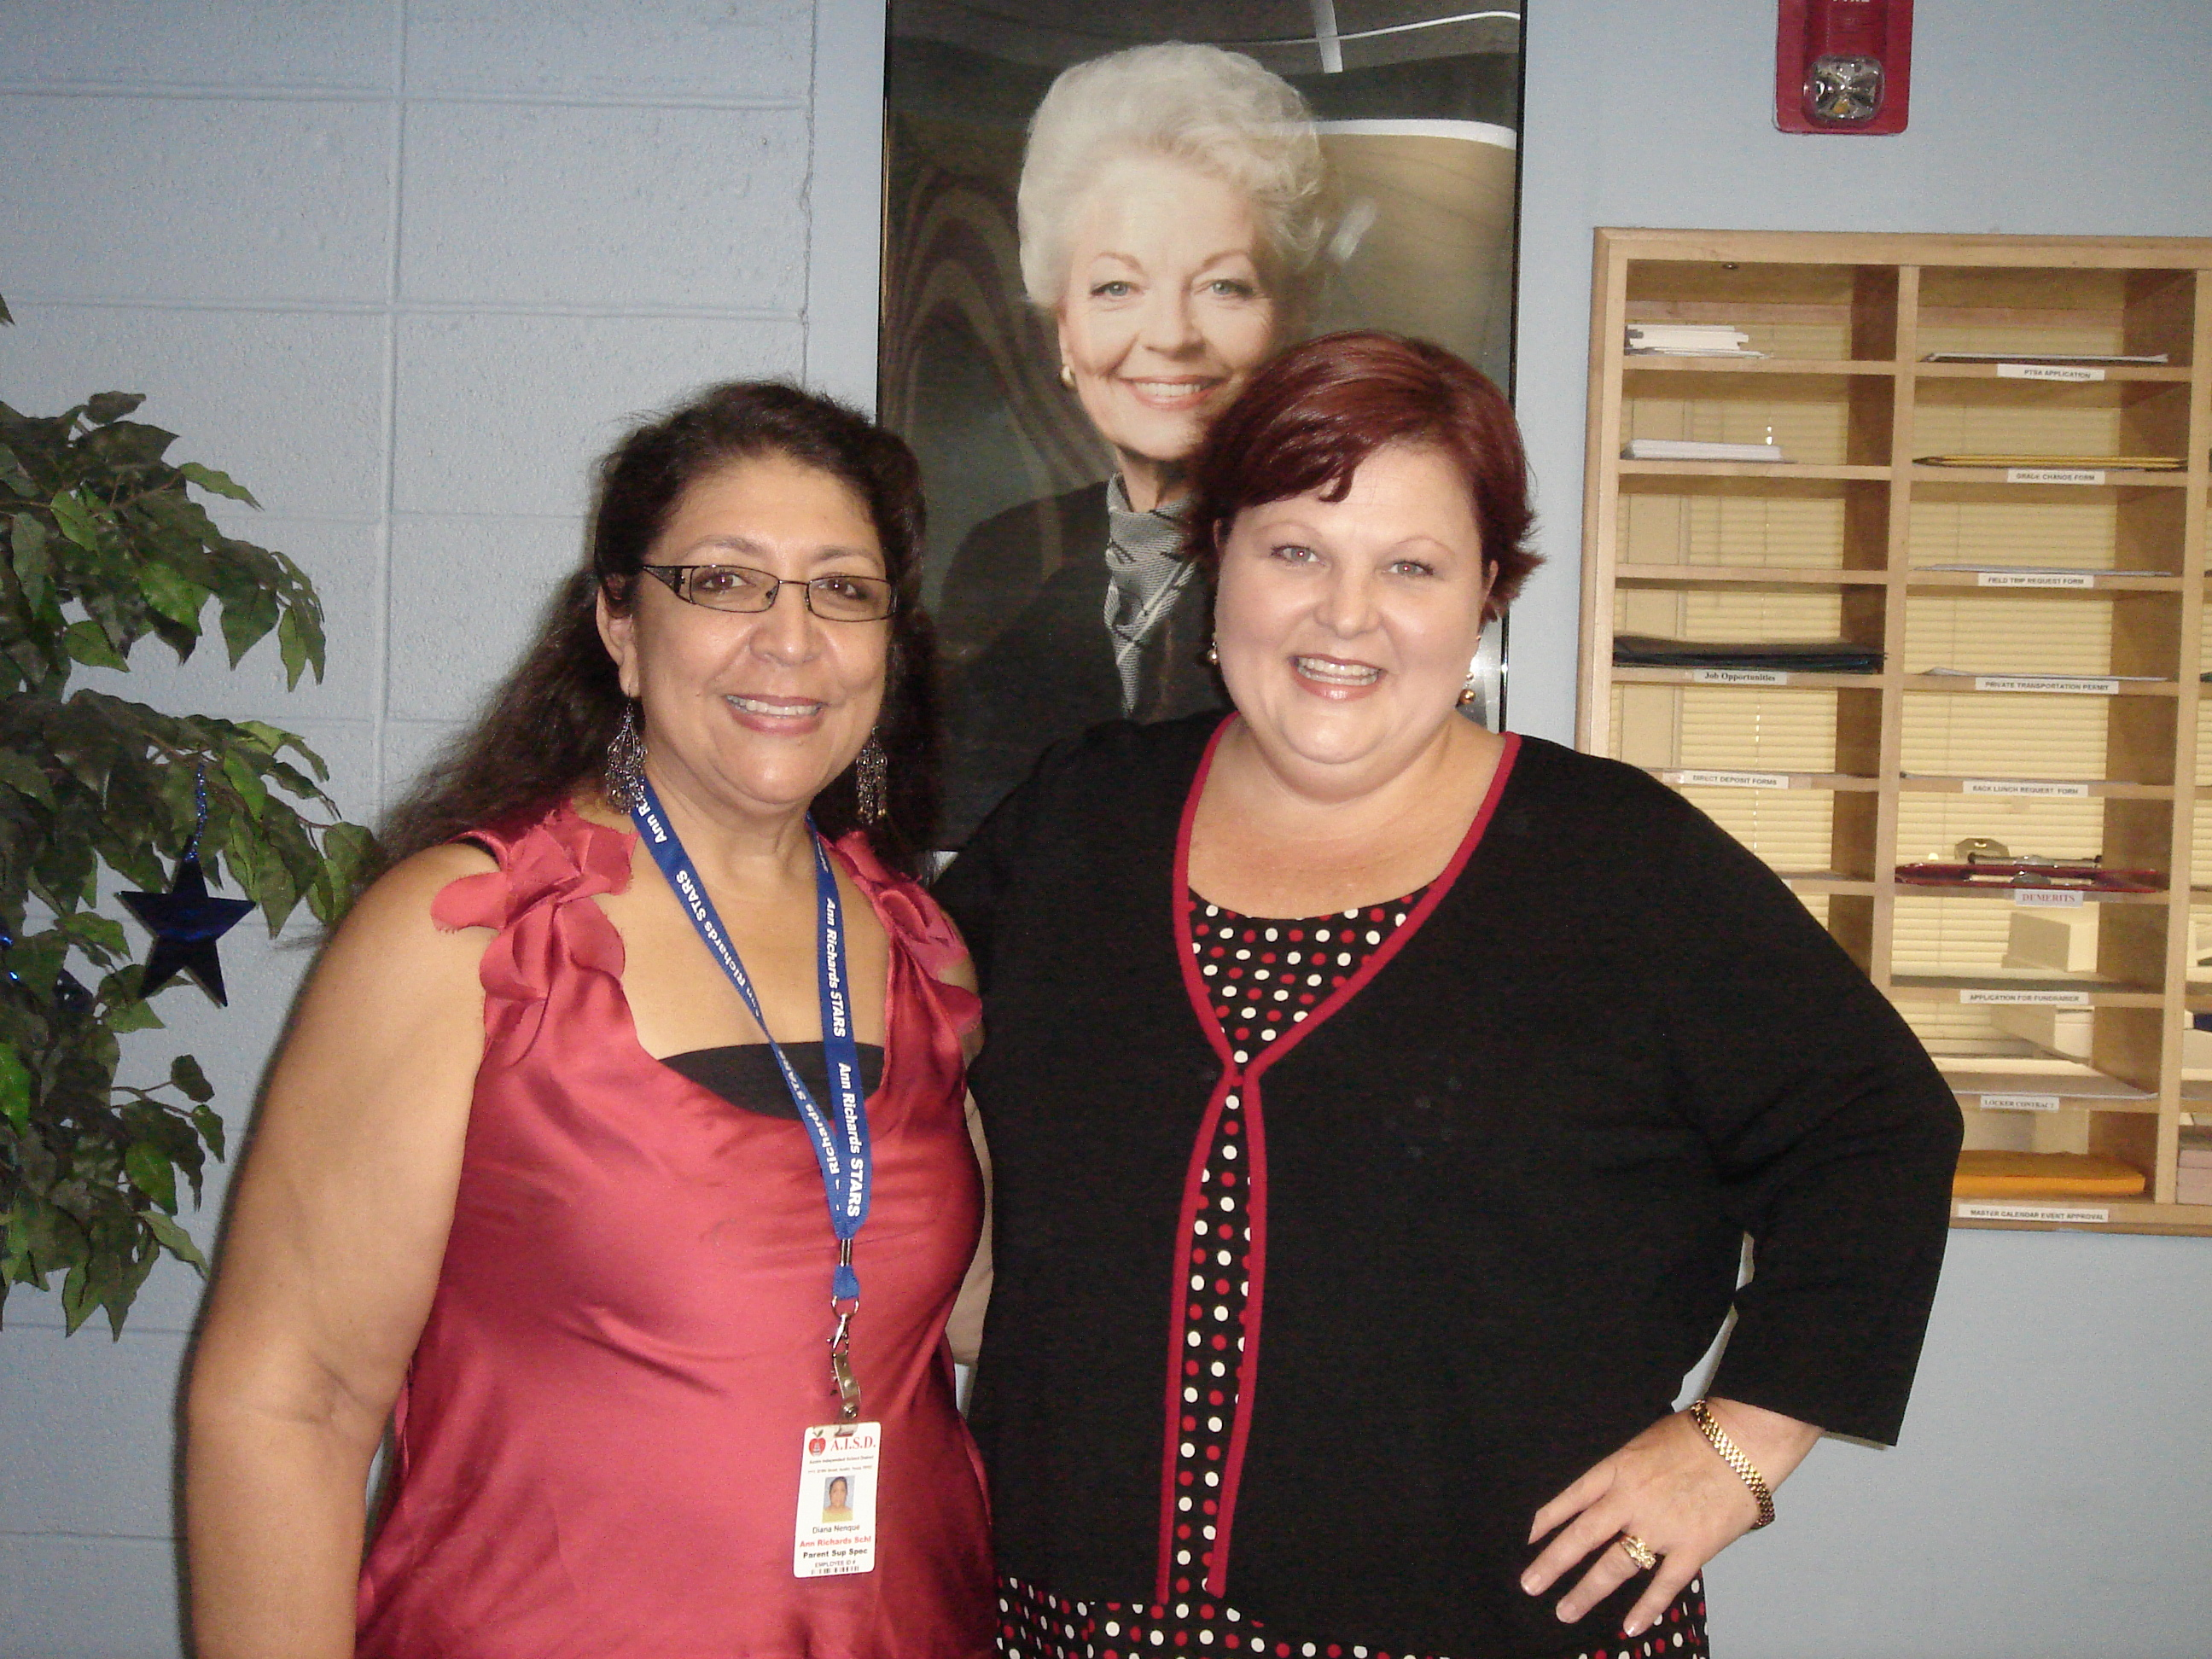 Susan Kirkpatrick and Diana Nenque at Ann Richard's School